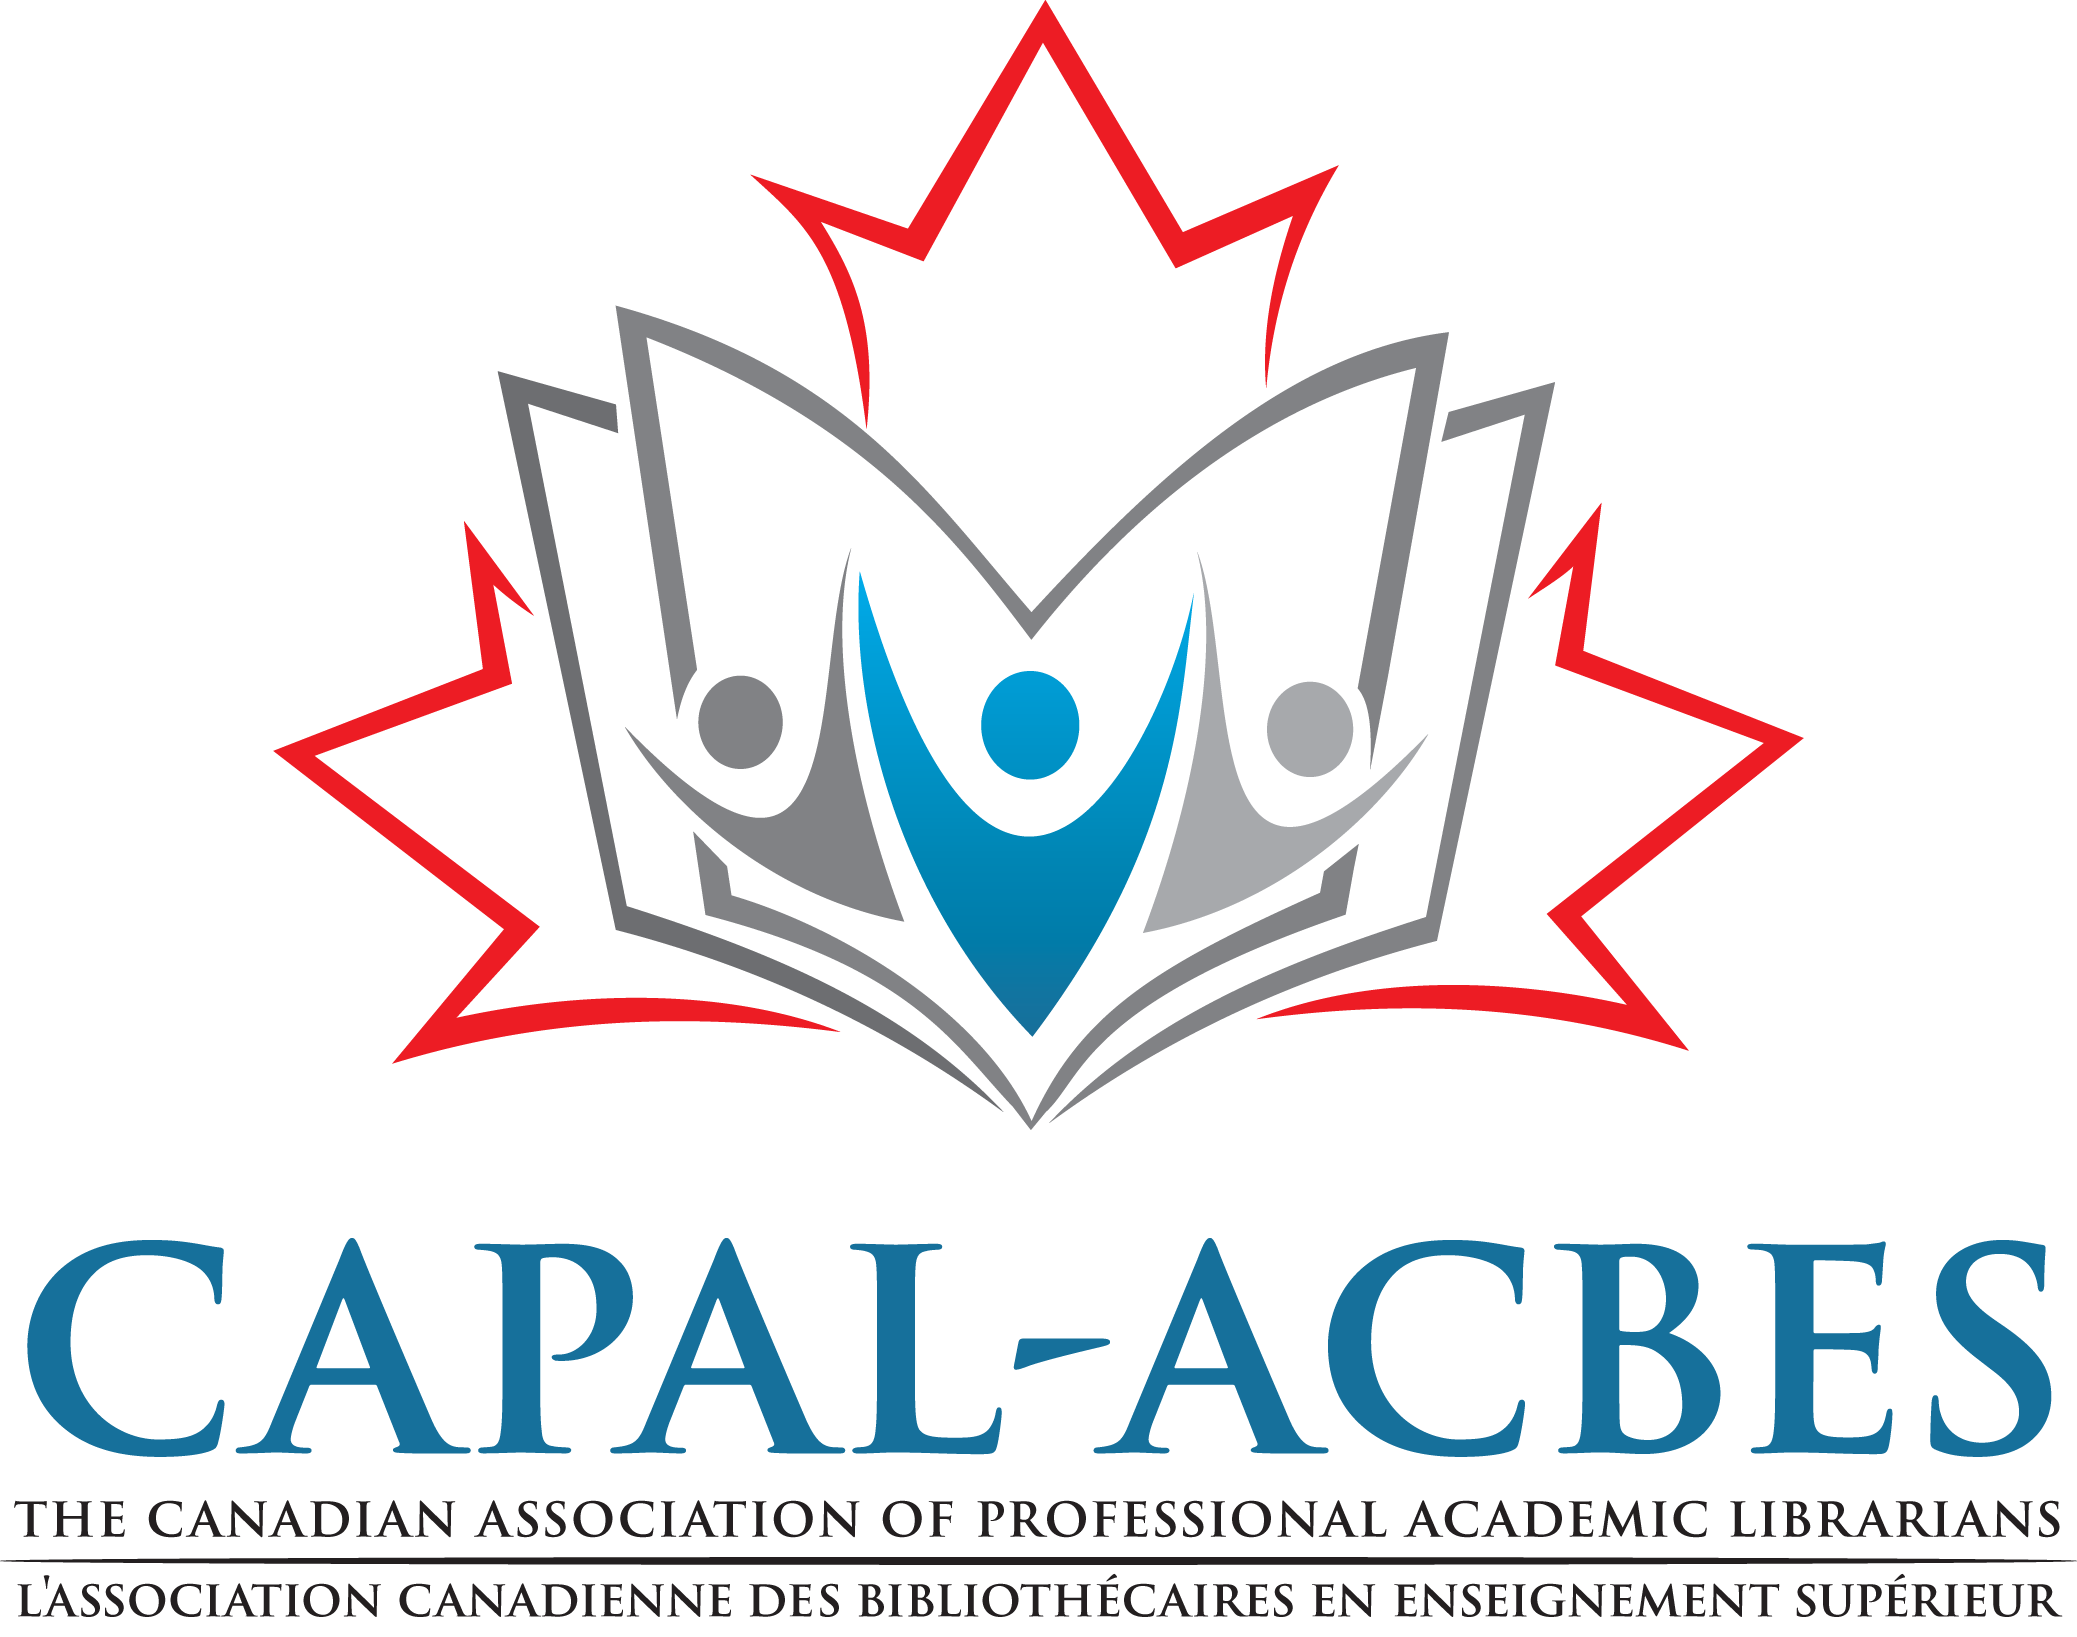 capal_logo_with_text-2019.png